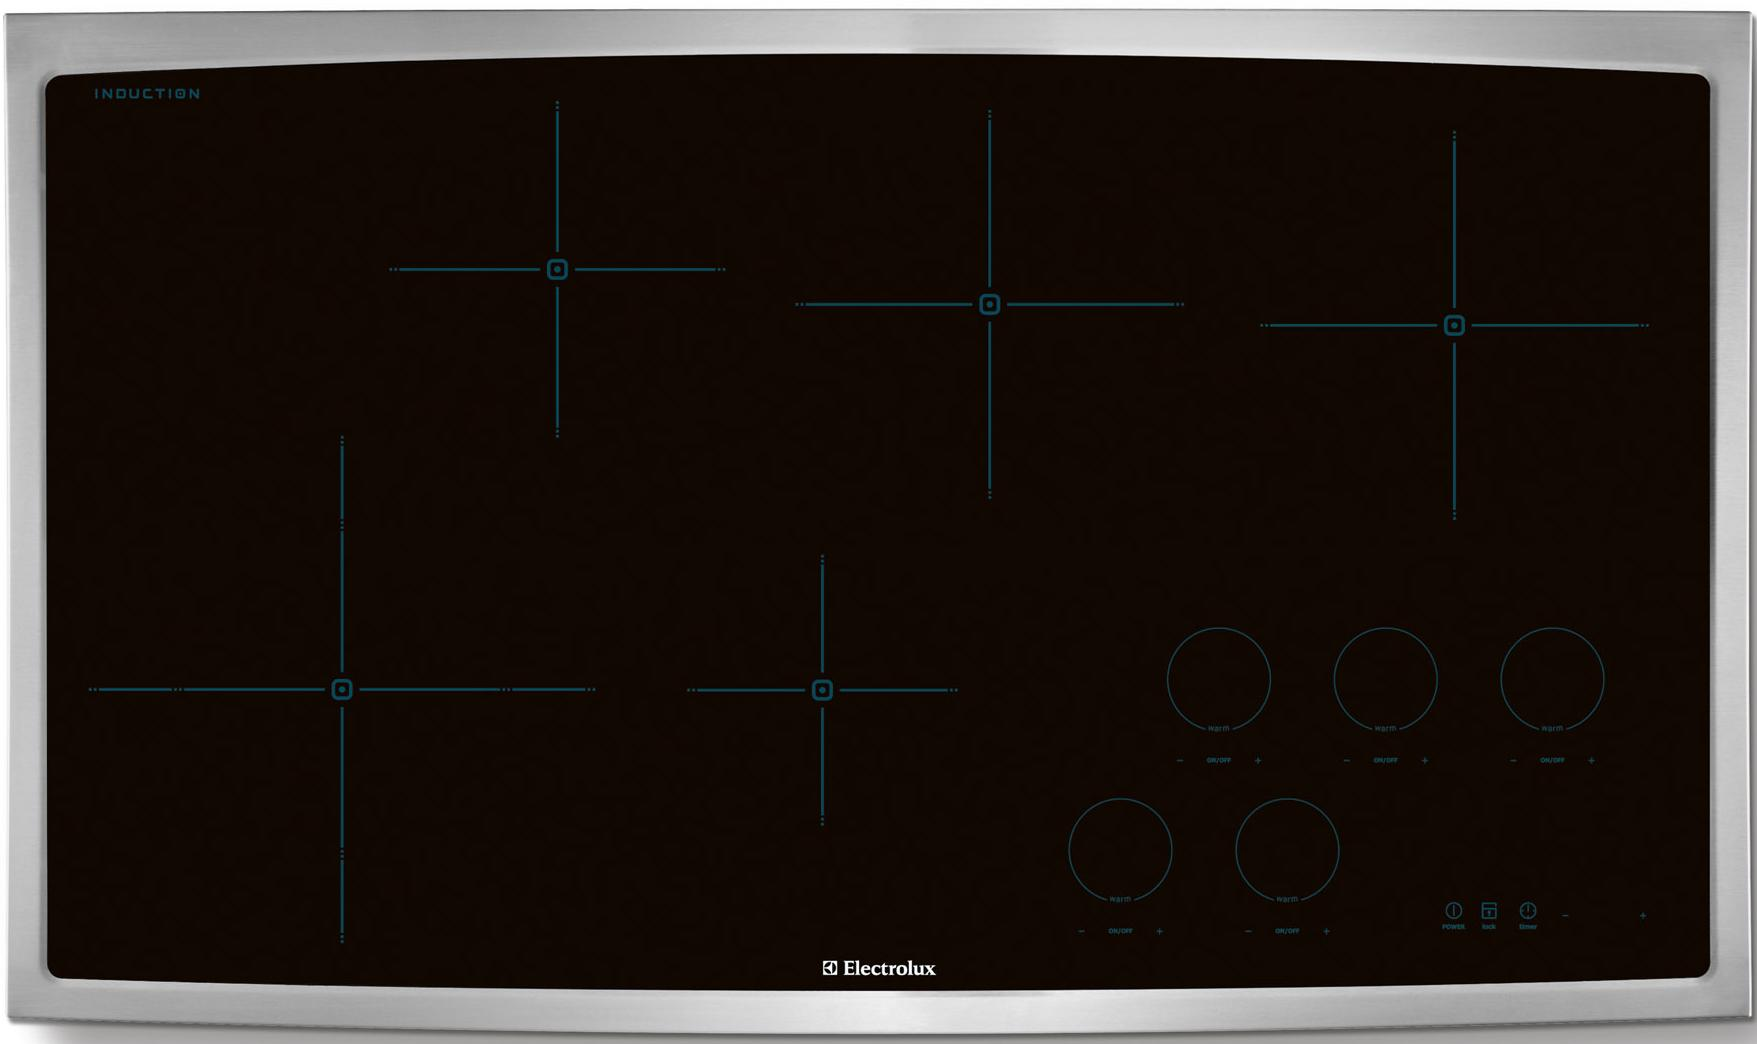 """Electrolux Electric Cooktops 36"""" Drop-In Induction Cooktop - Item Number: EW36IC60LS"""